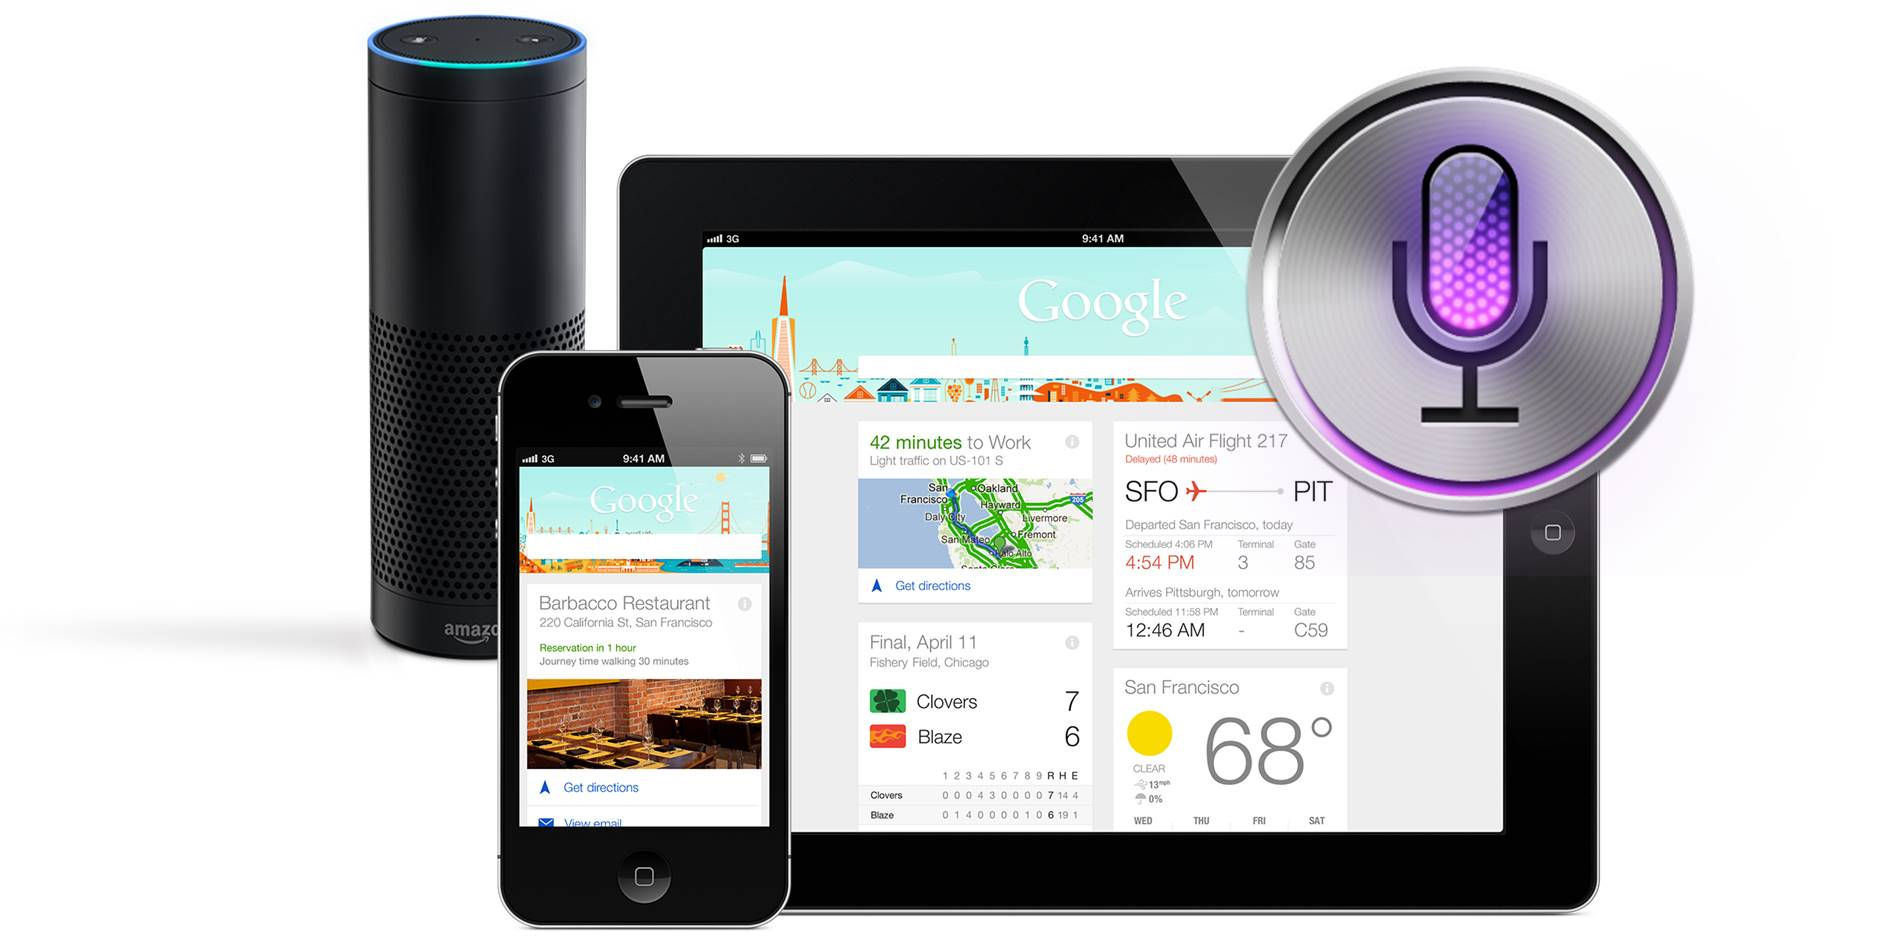 Amazon Alexa, Google Now & Apple Siri talking to each other